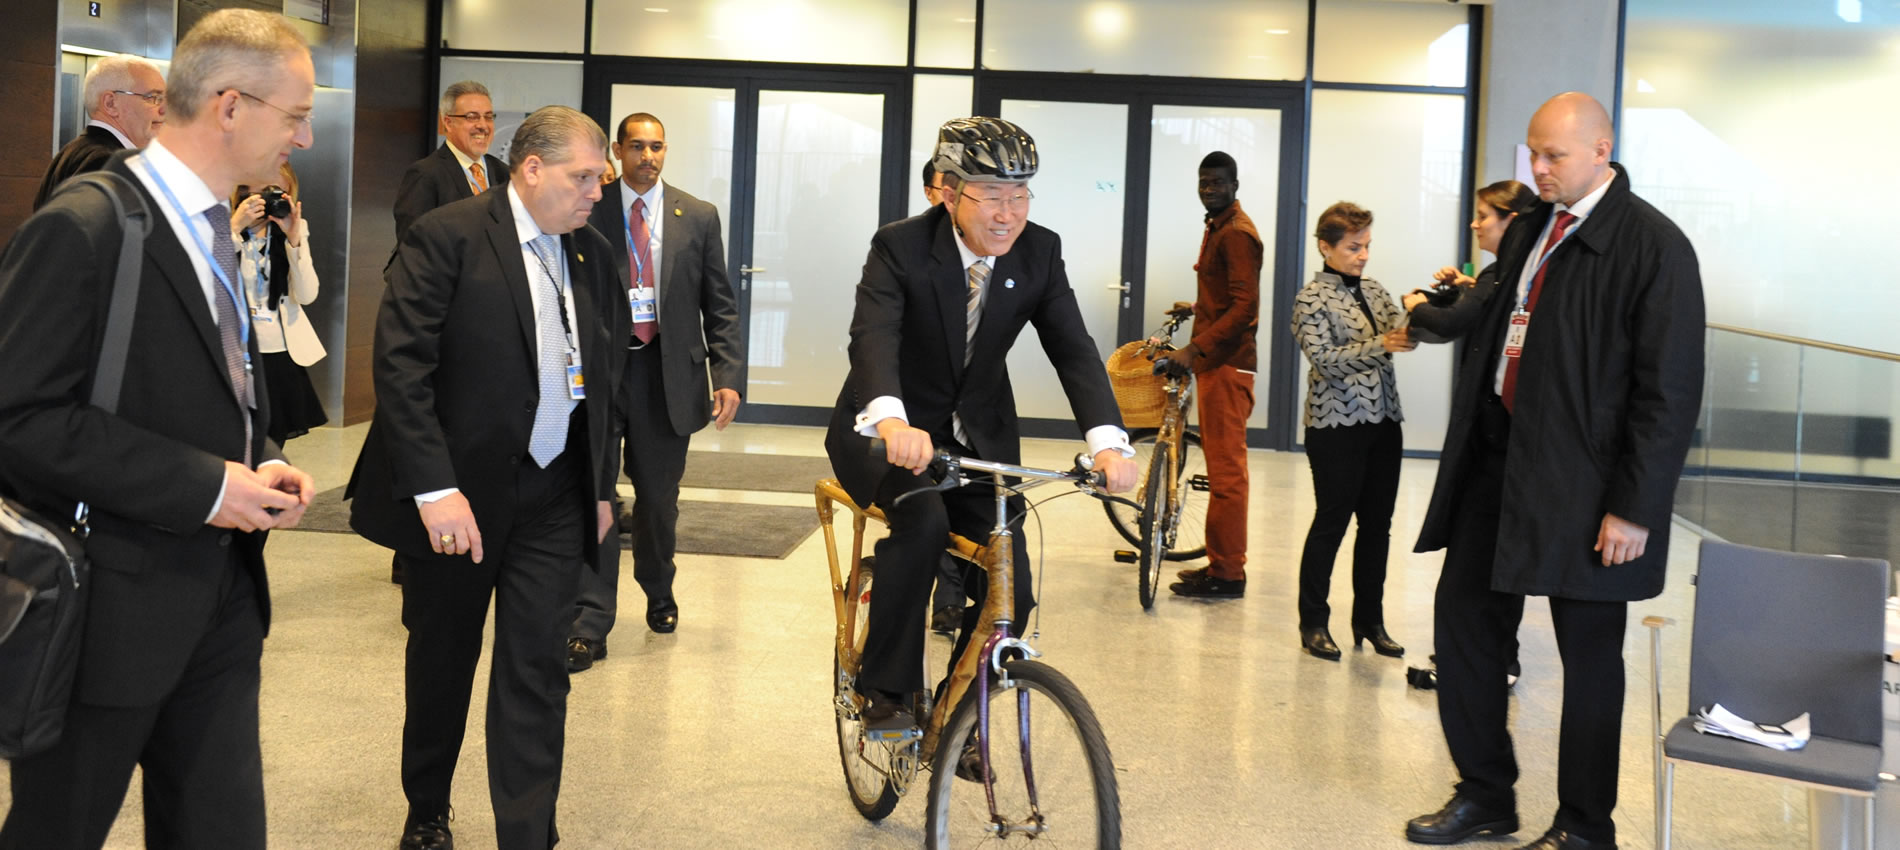 UN Secretary General Ban Ki-Moon riding one of our bikes